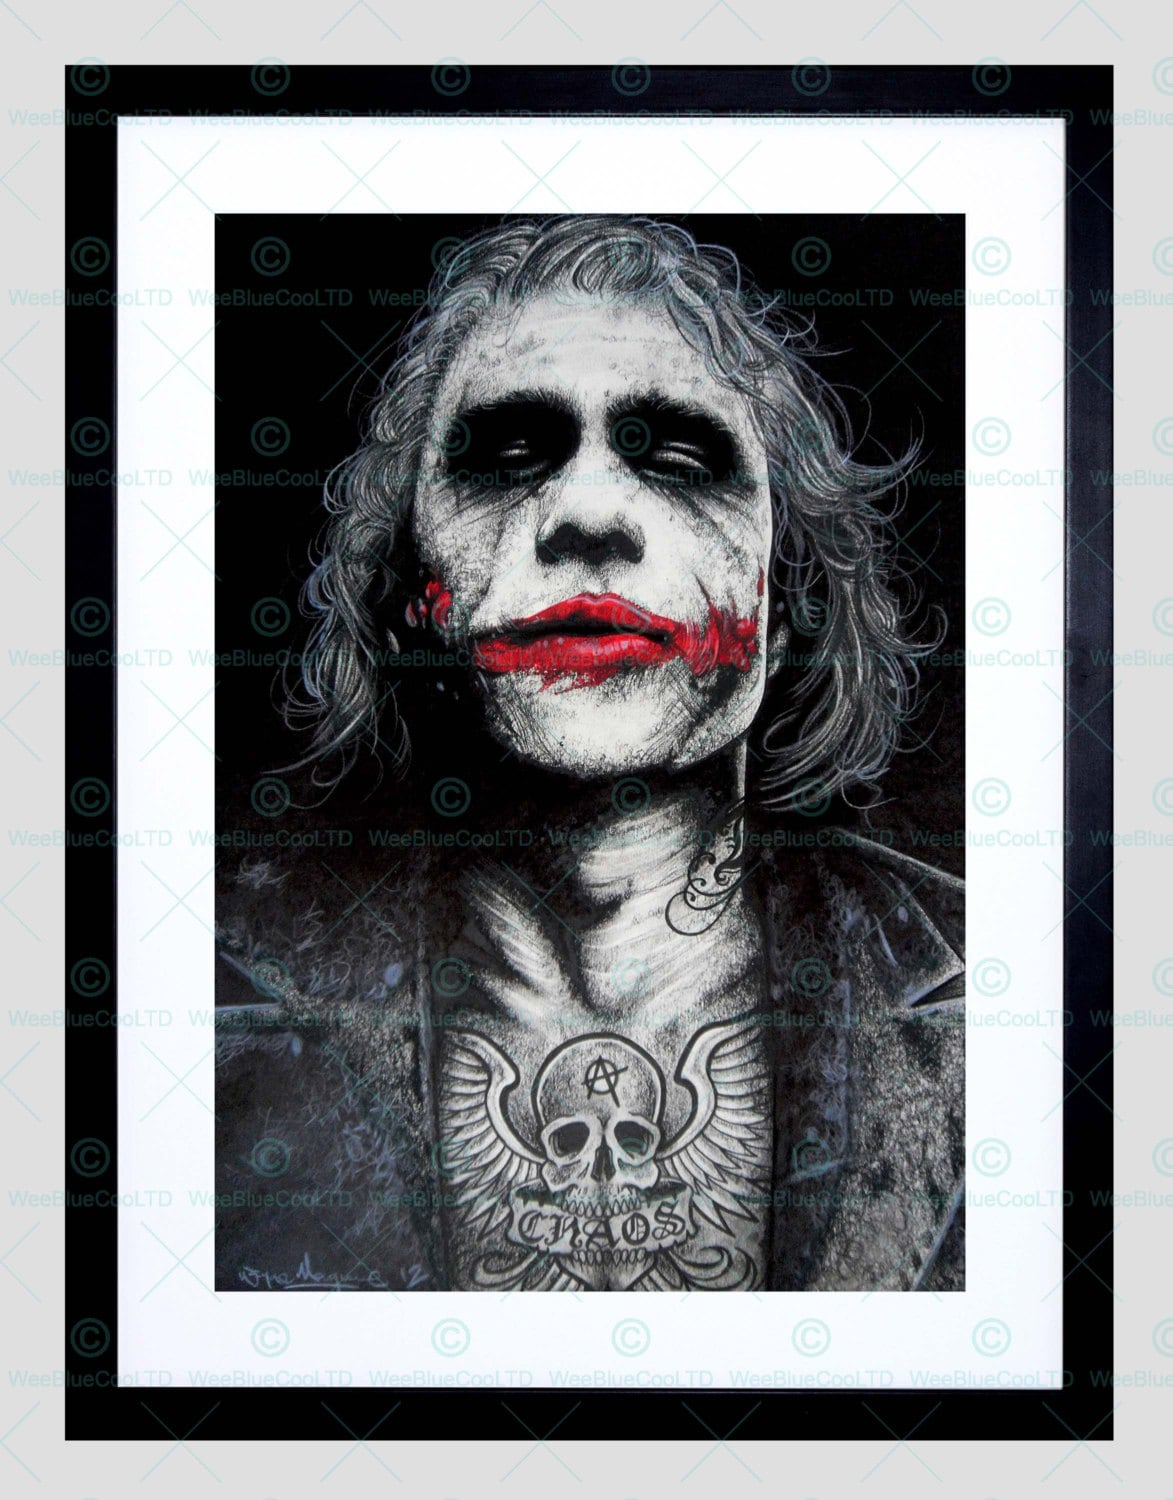 da46d9ffe The Joker / Heath Ledger / Batman / Tattoo / Inked Icon / | Etsy